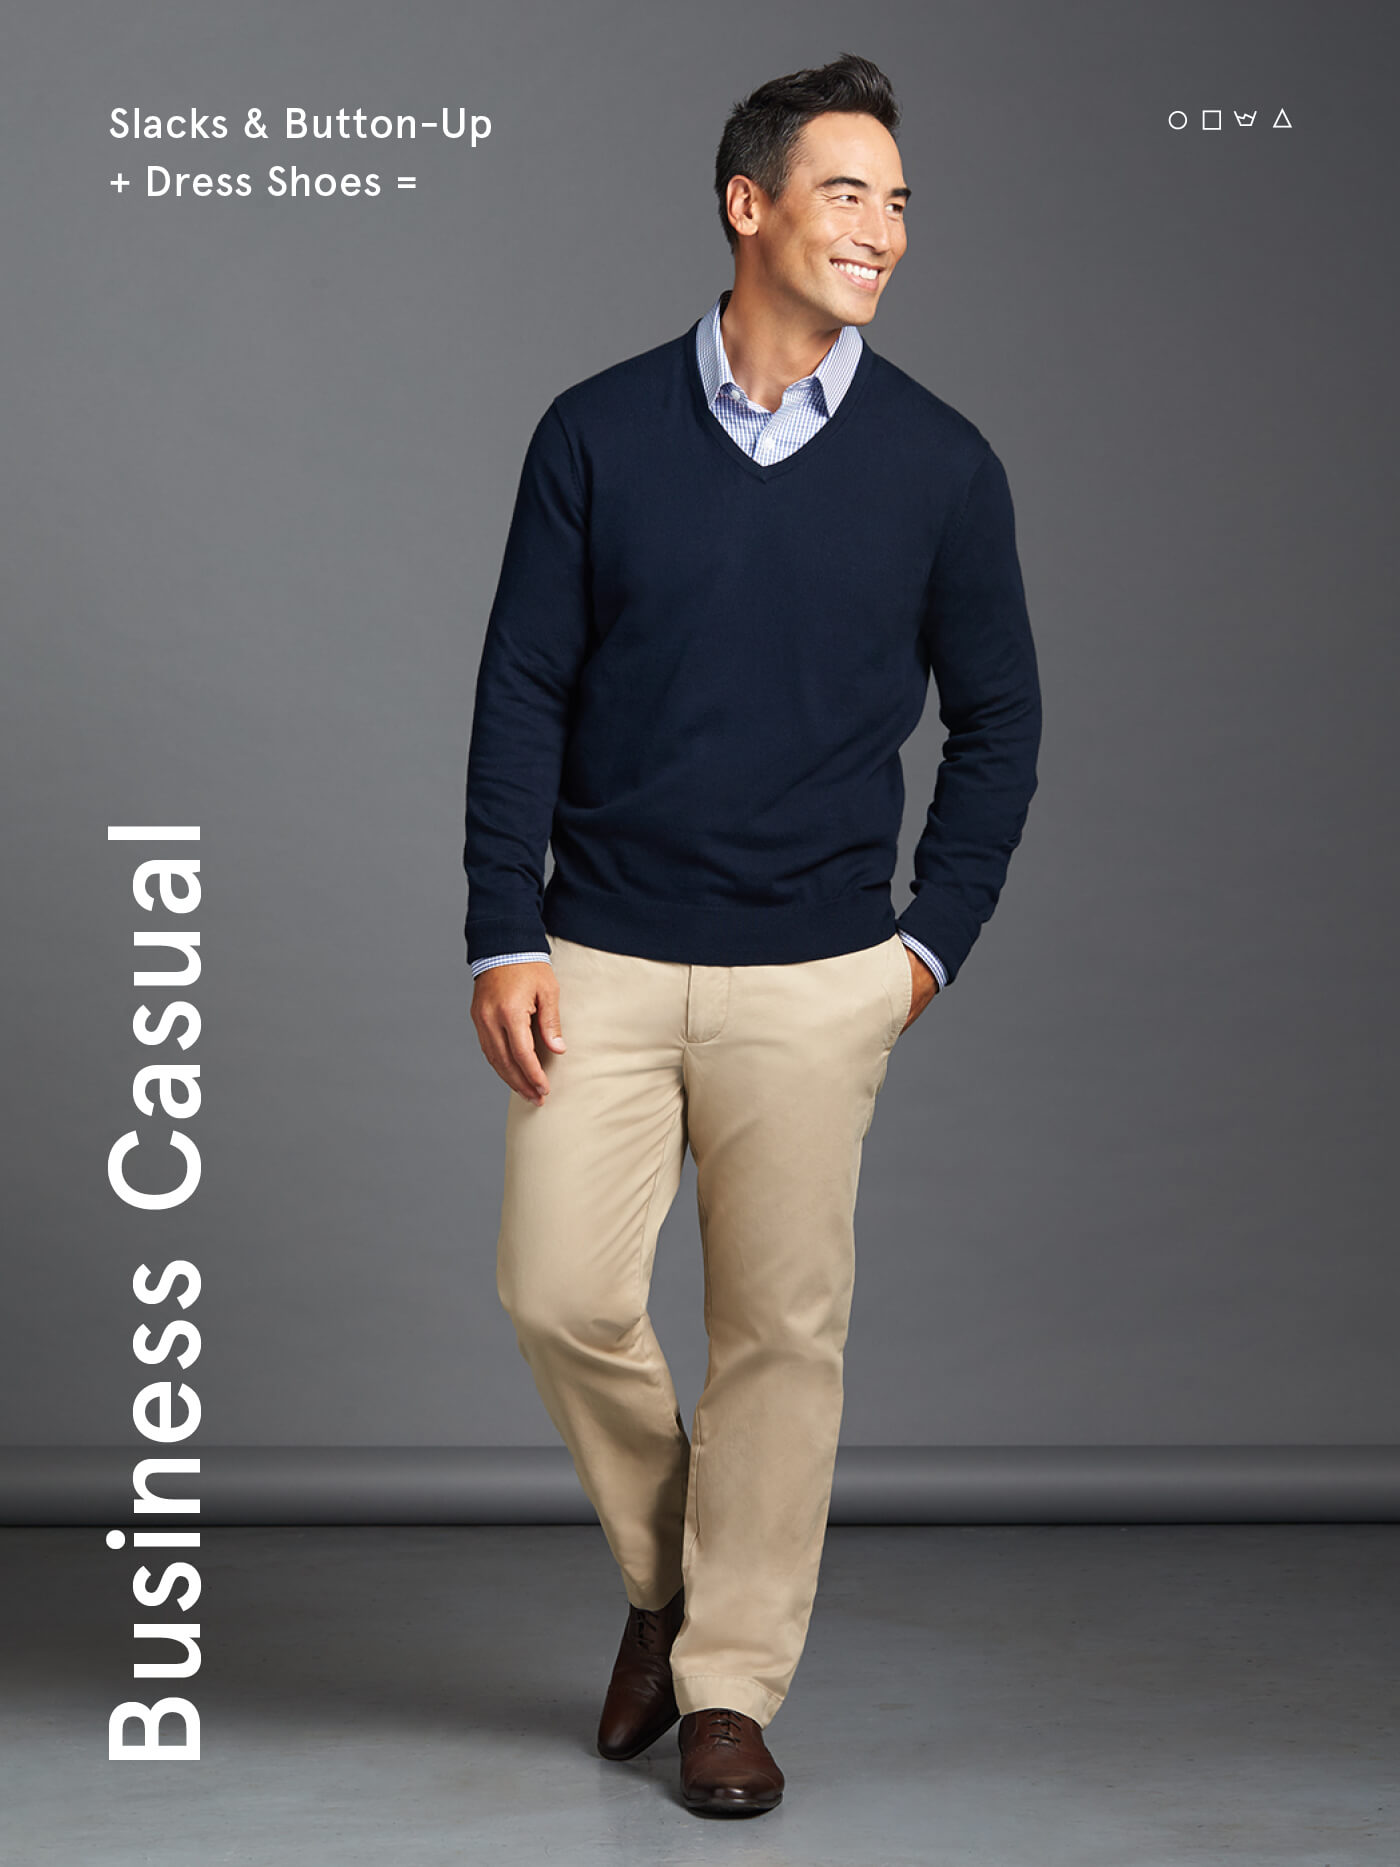 b8c1a01ba8 what is business casual for men? slack and a button-up with dress shoes